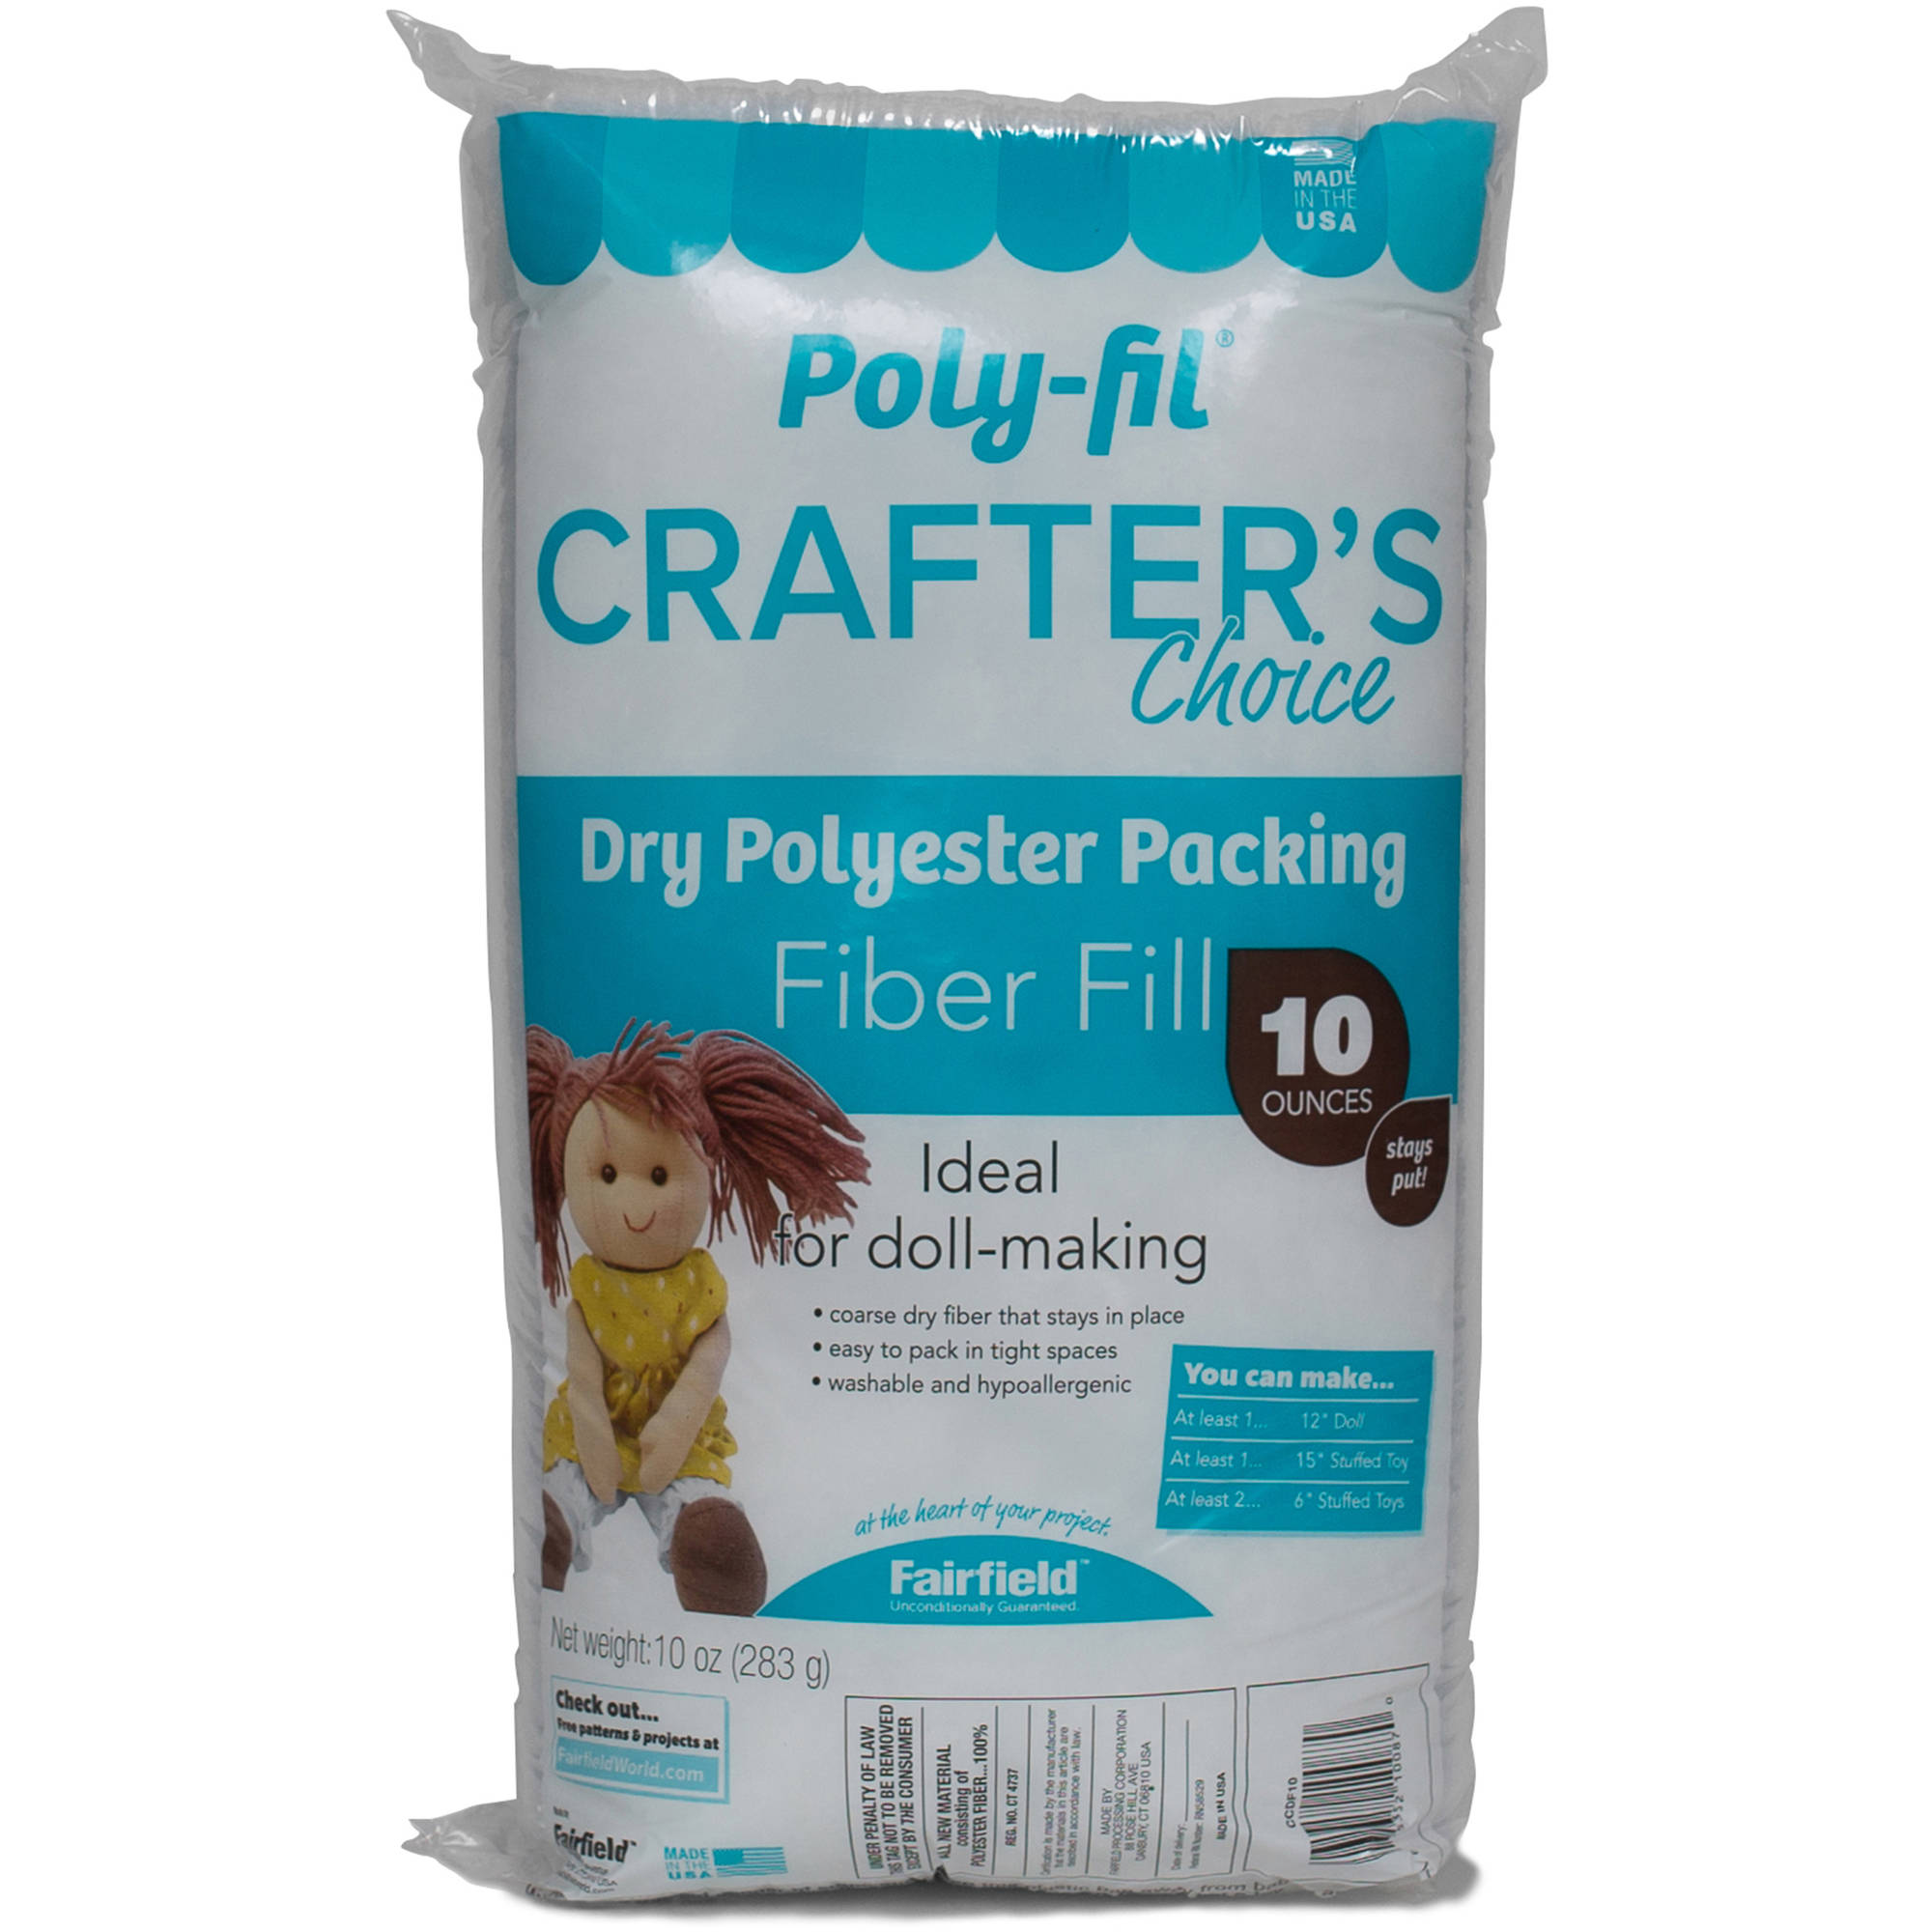 Crafter's Choice Polyester Fiberfill, 10 oz